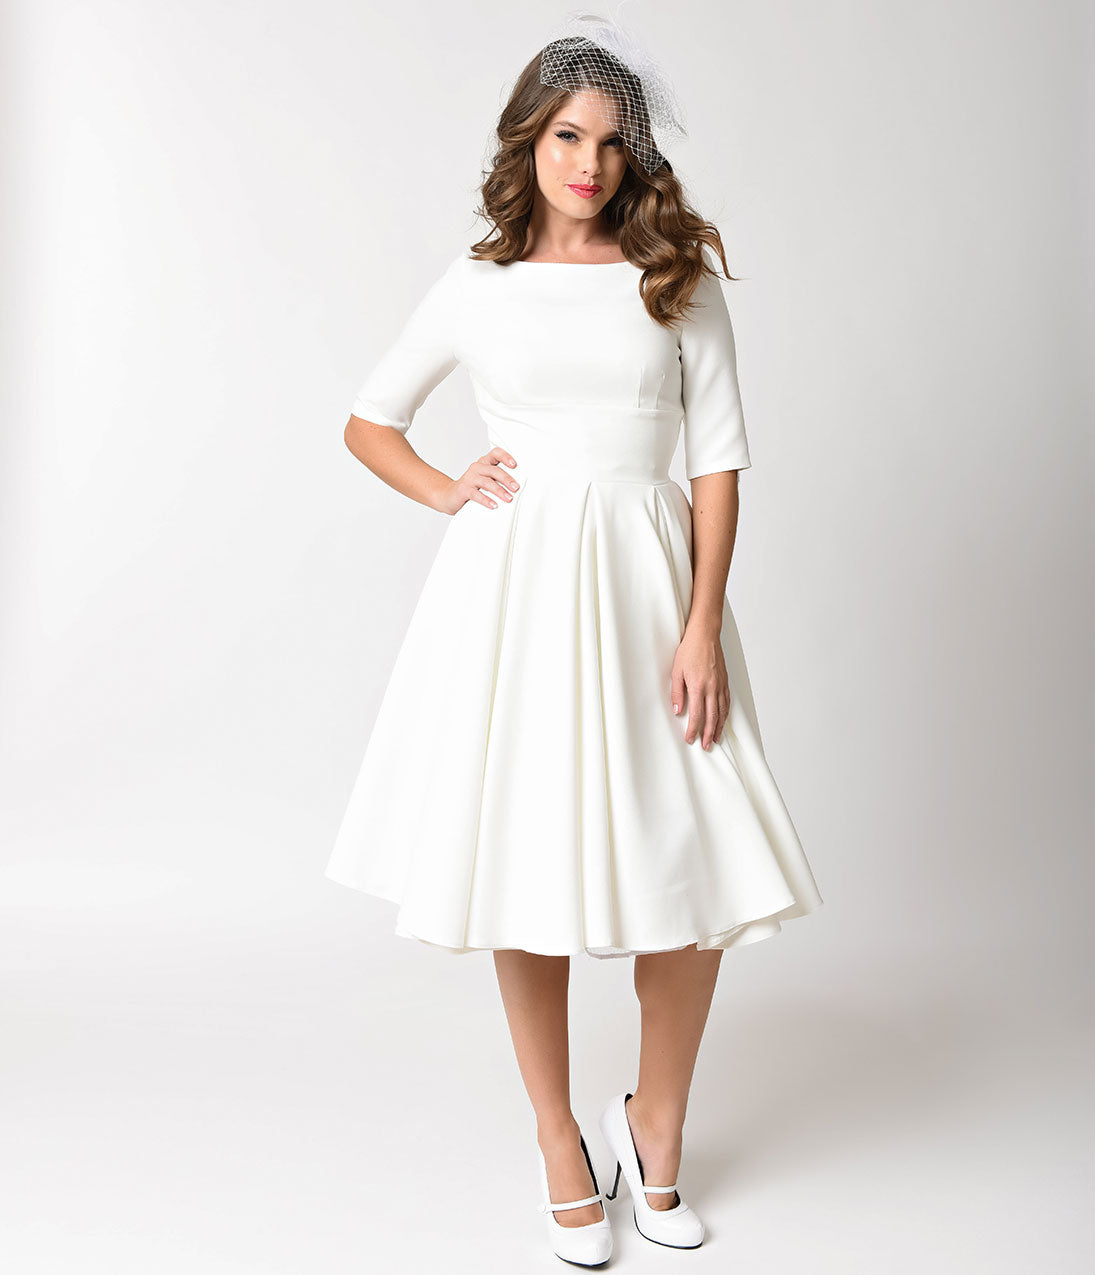 60s 70s Plus Size Dresses, Clothing, Costumes The Pretty Dress Company Ivory Crepe Sleeved Hepburn Swing Dress $172.00 AT vintagedancer.com